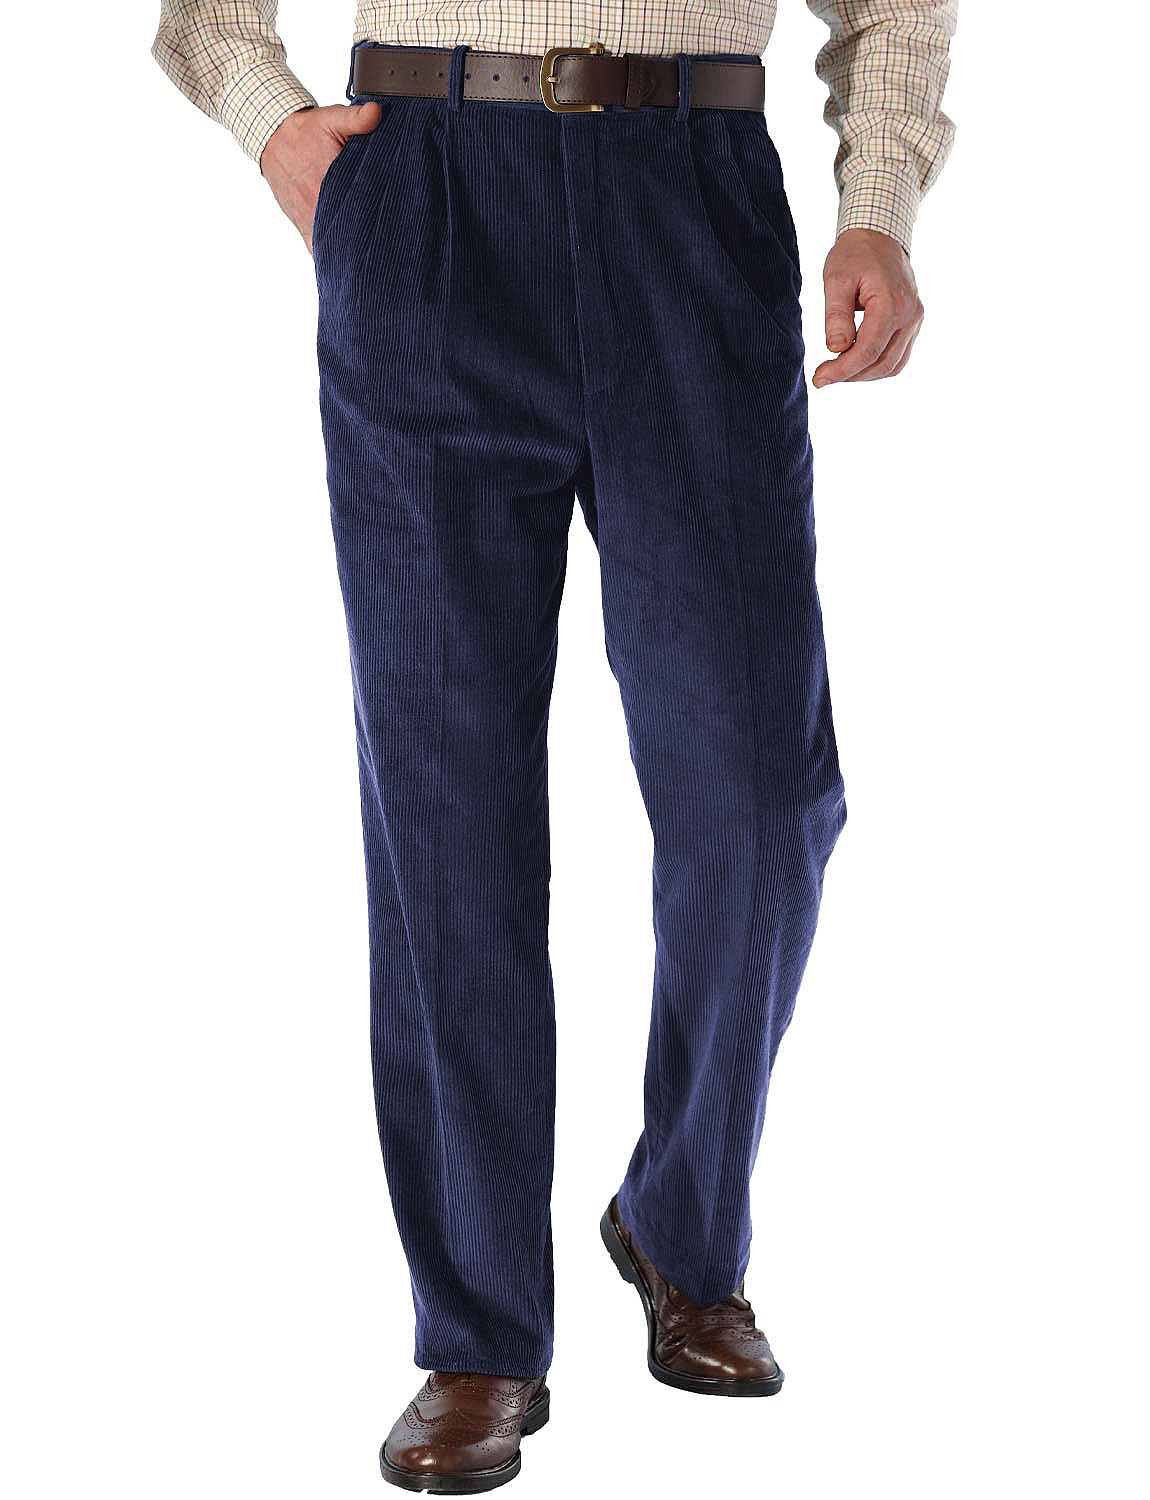 Luxury Cotton High Rise Corduroy Trousers With Self Adjusting